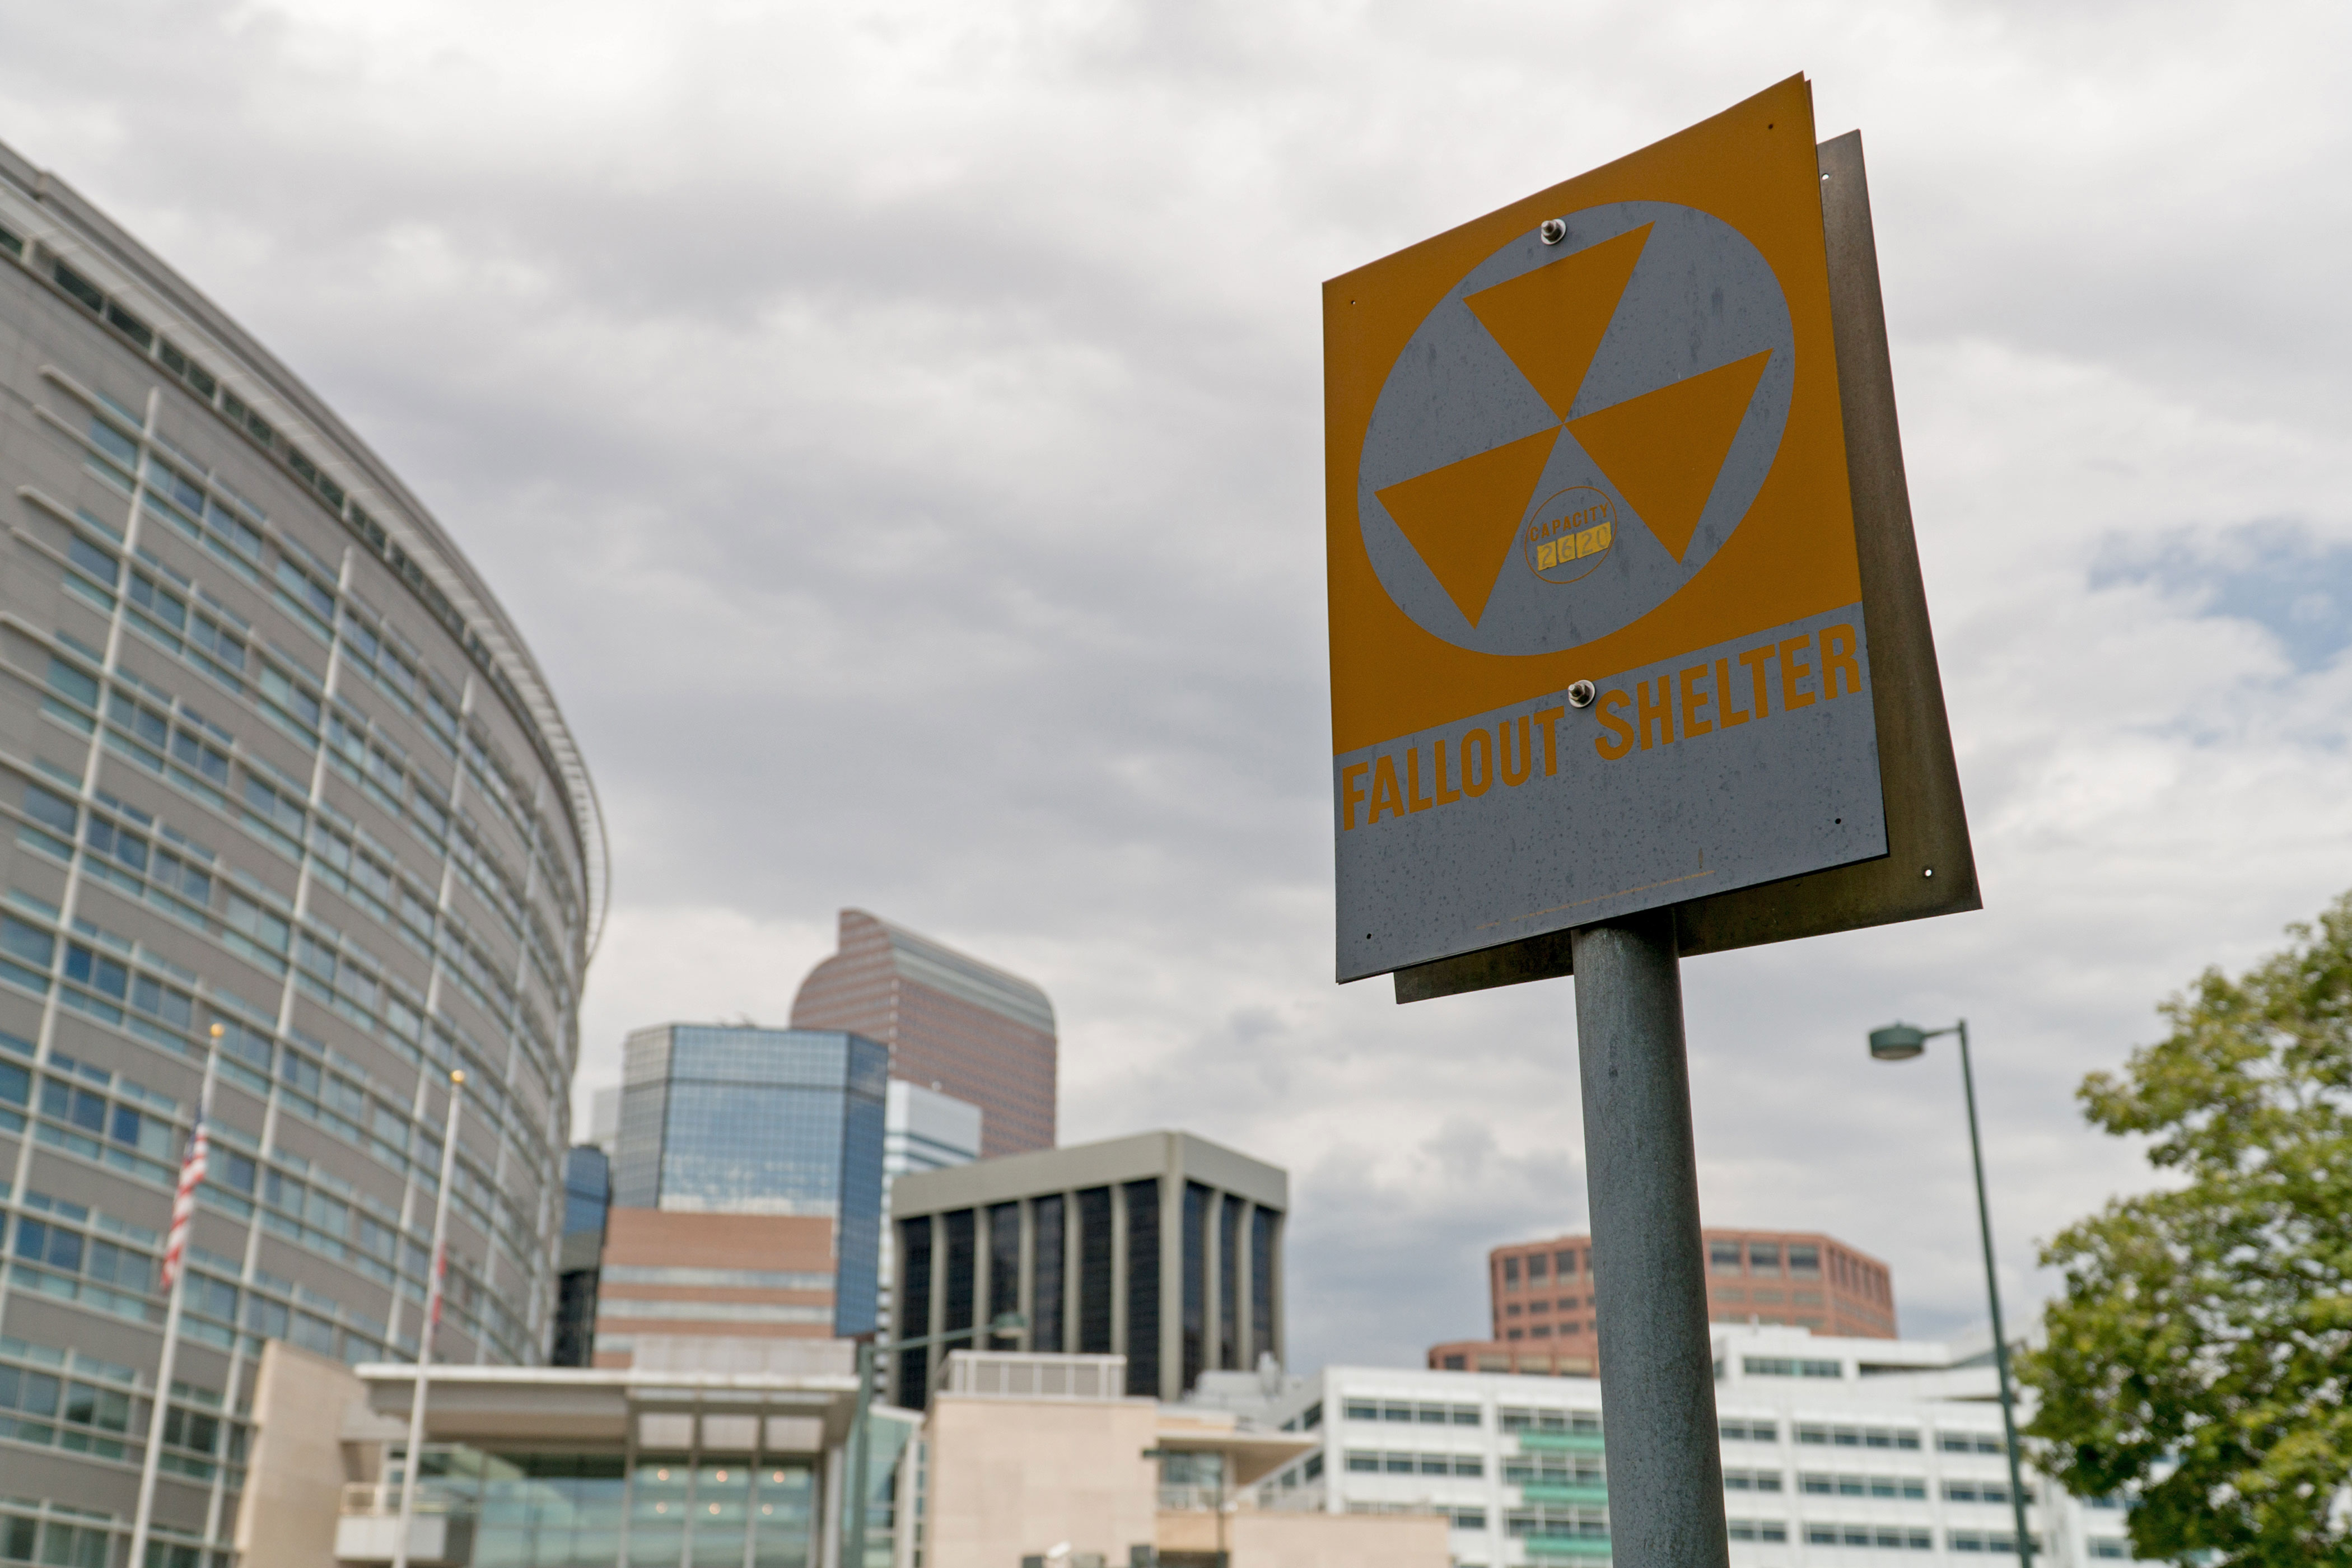 The fallout shelter sign on the north side of the Denver City and County Building, looking back toward downtown along Colfax Avenue.